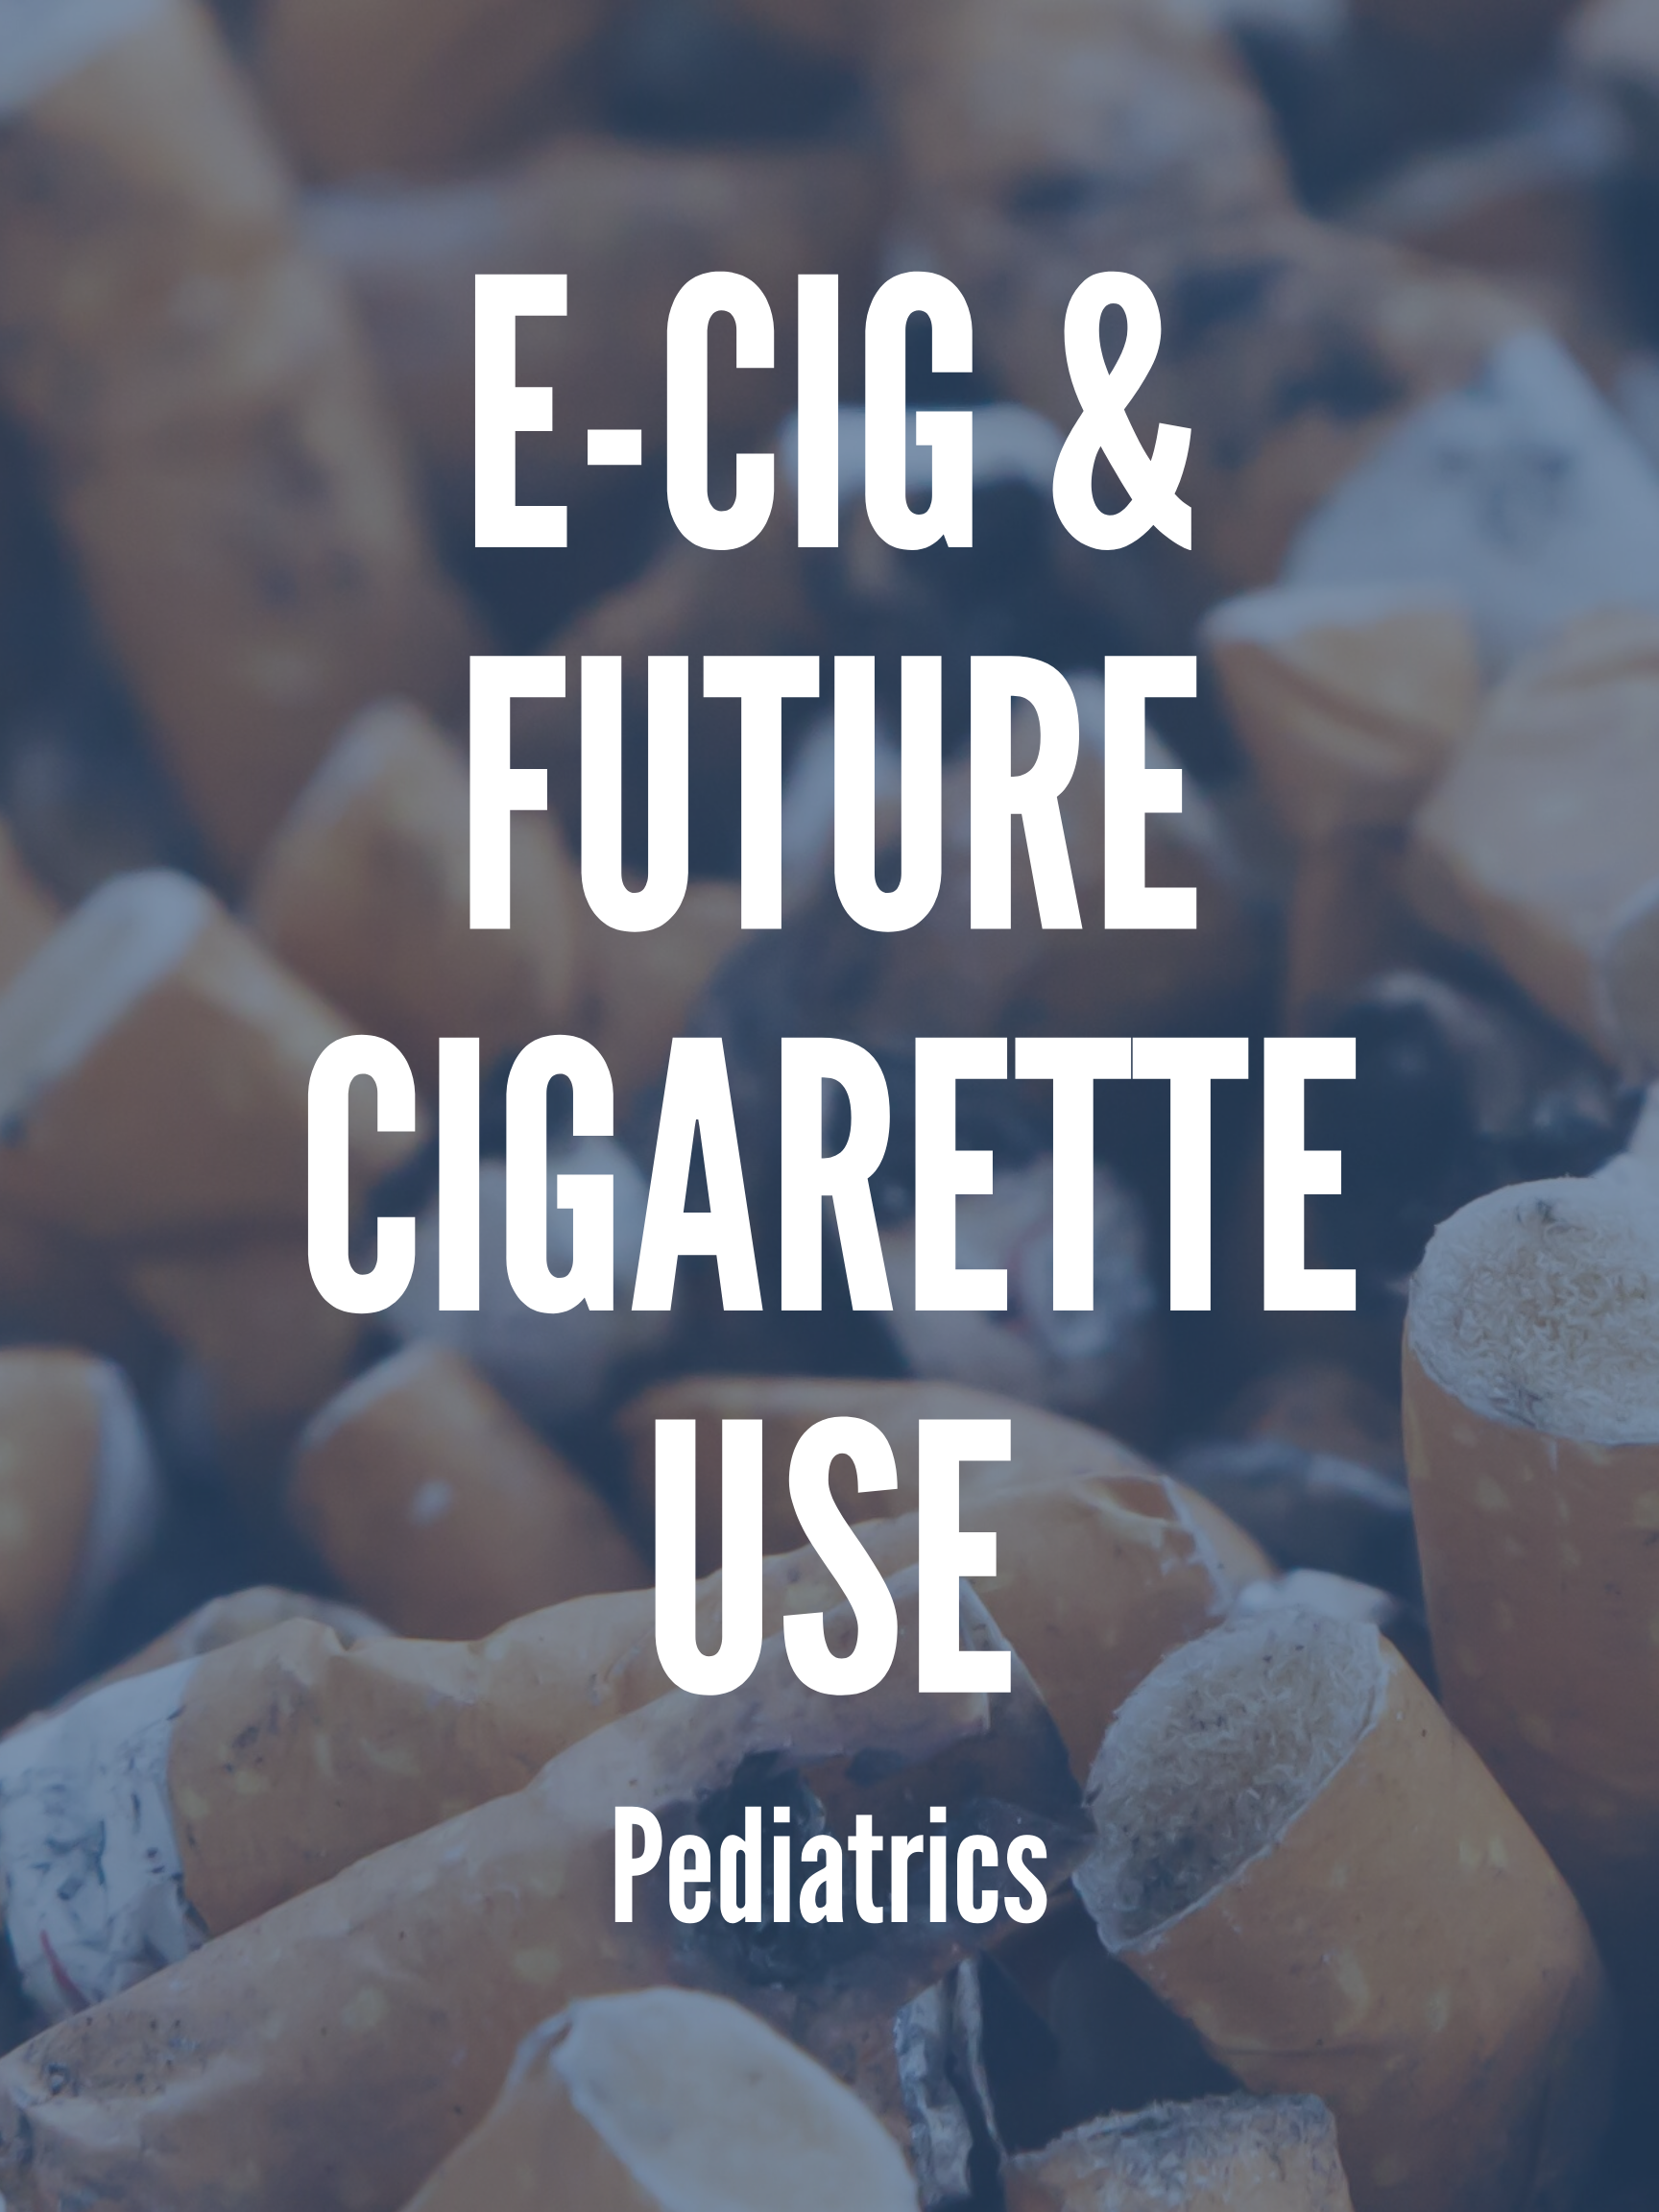 E-cigarette and future cigarette use article